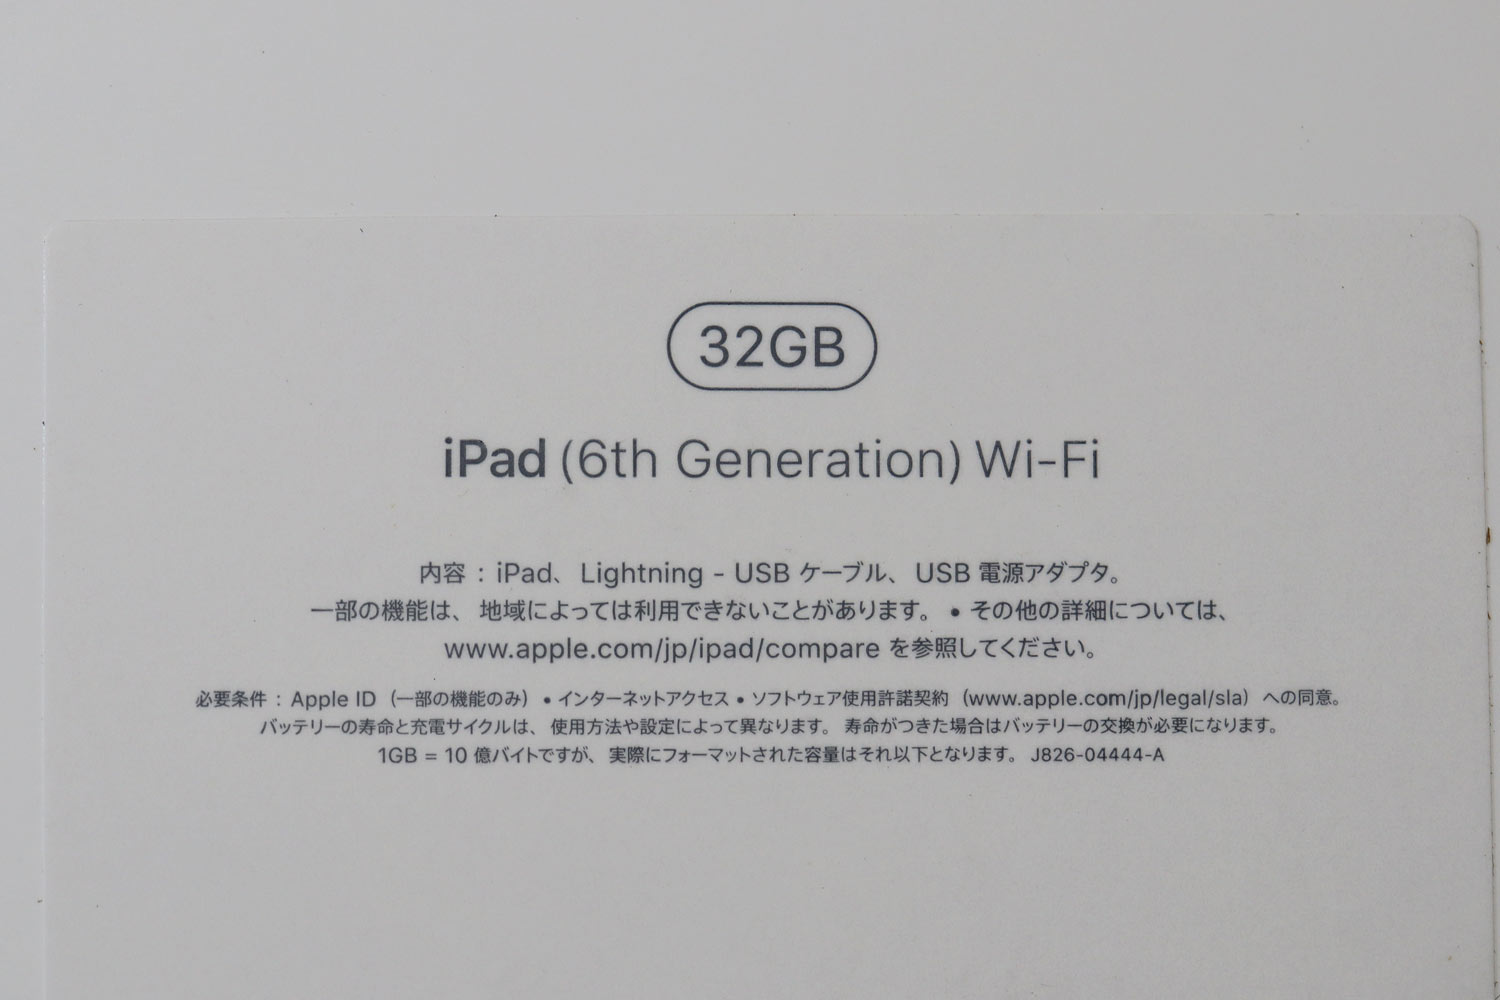 iPad(6th Generation)